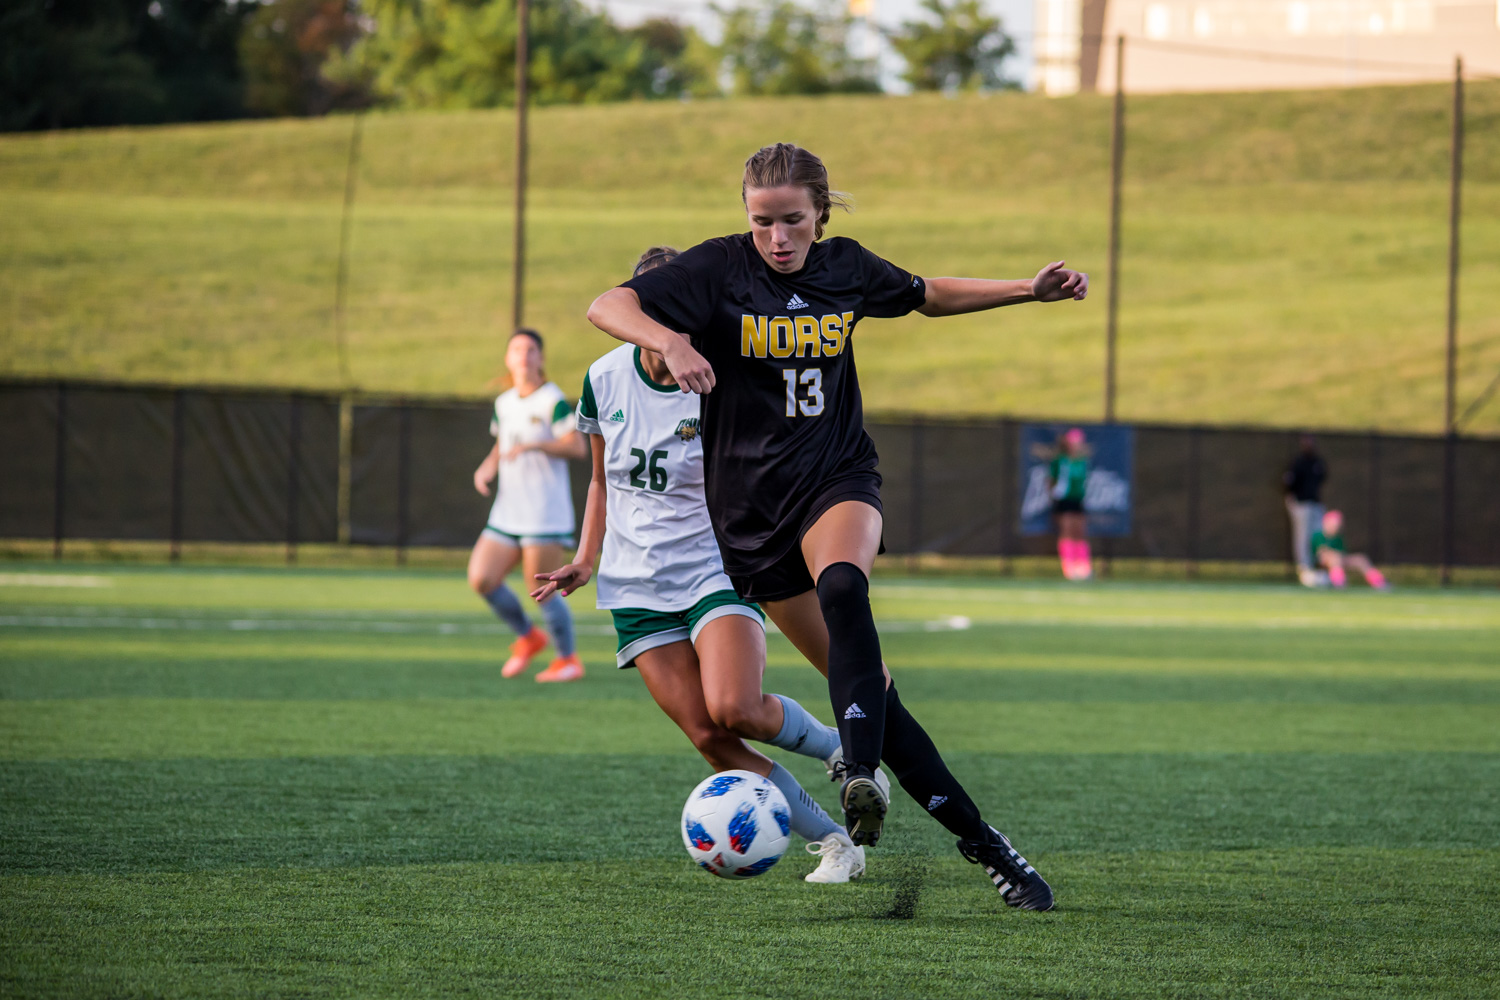 Shelby+Wall+%2813%29+dribbles+a+ball+down+the+field+during+the+game+against+Ohio+University.+The+Norse+fell+1-0+to+the+Bobcats+on+Sunday.